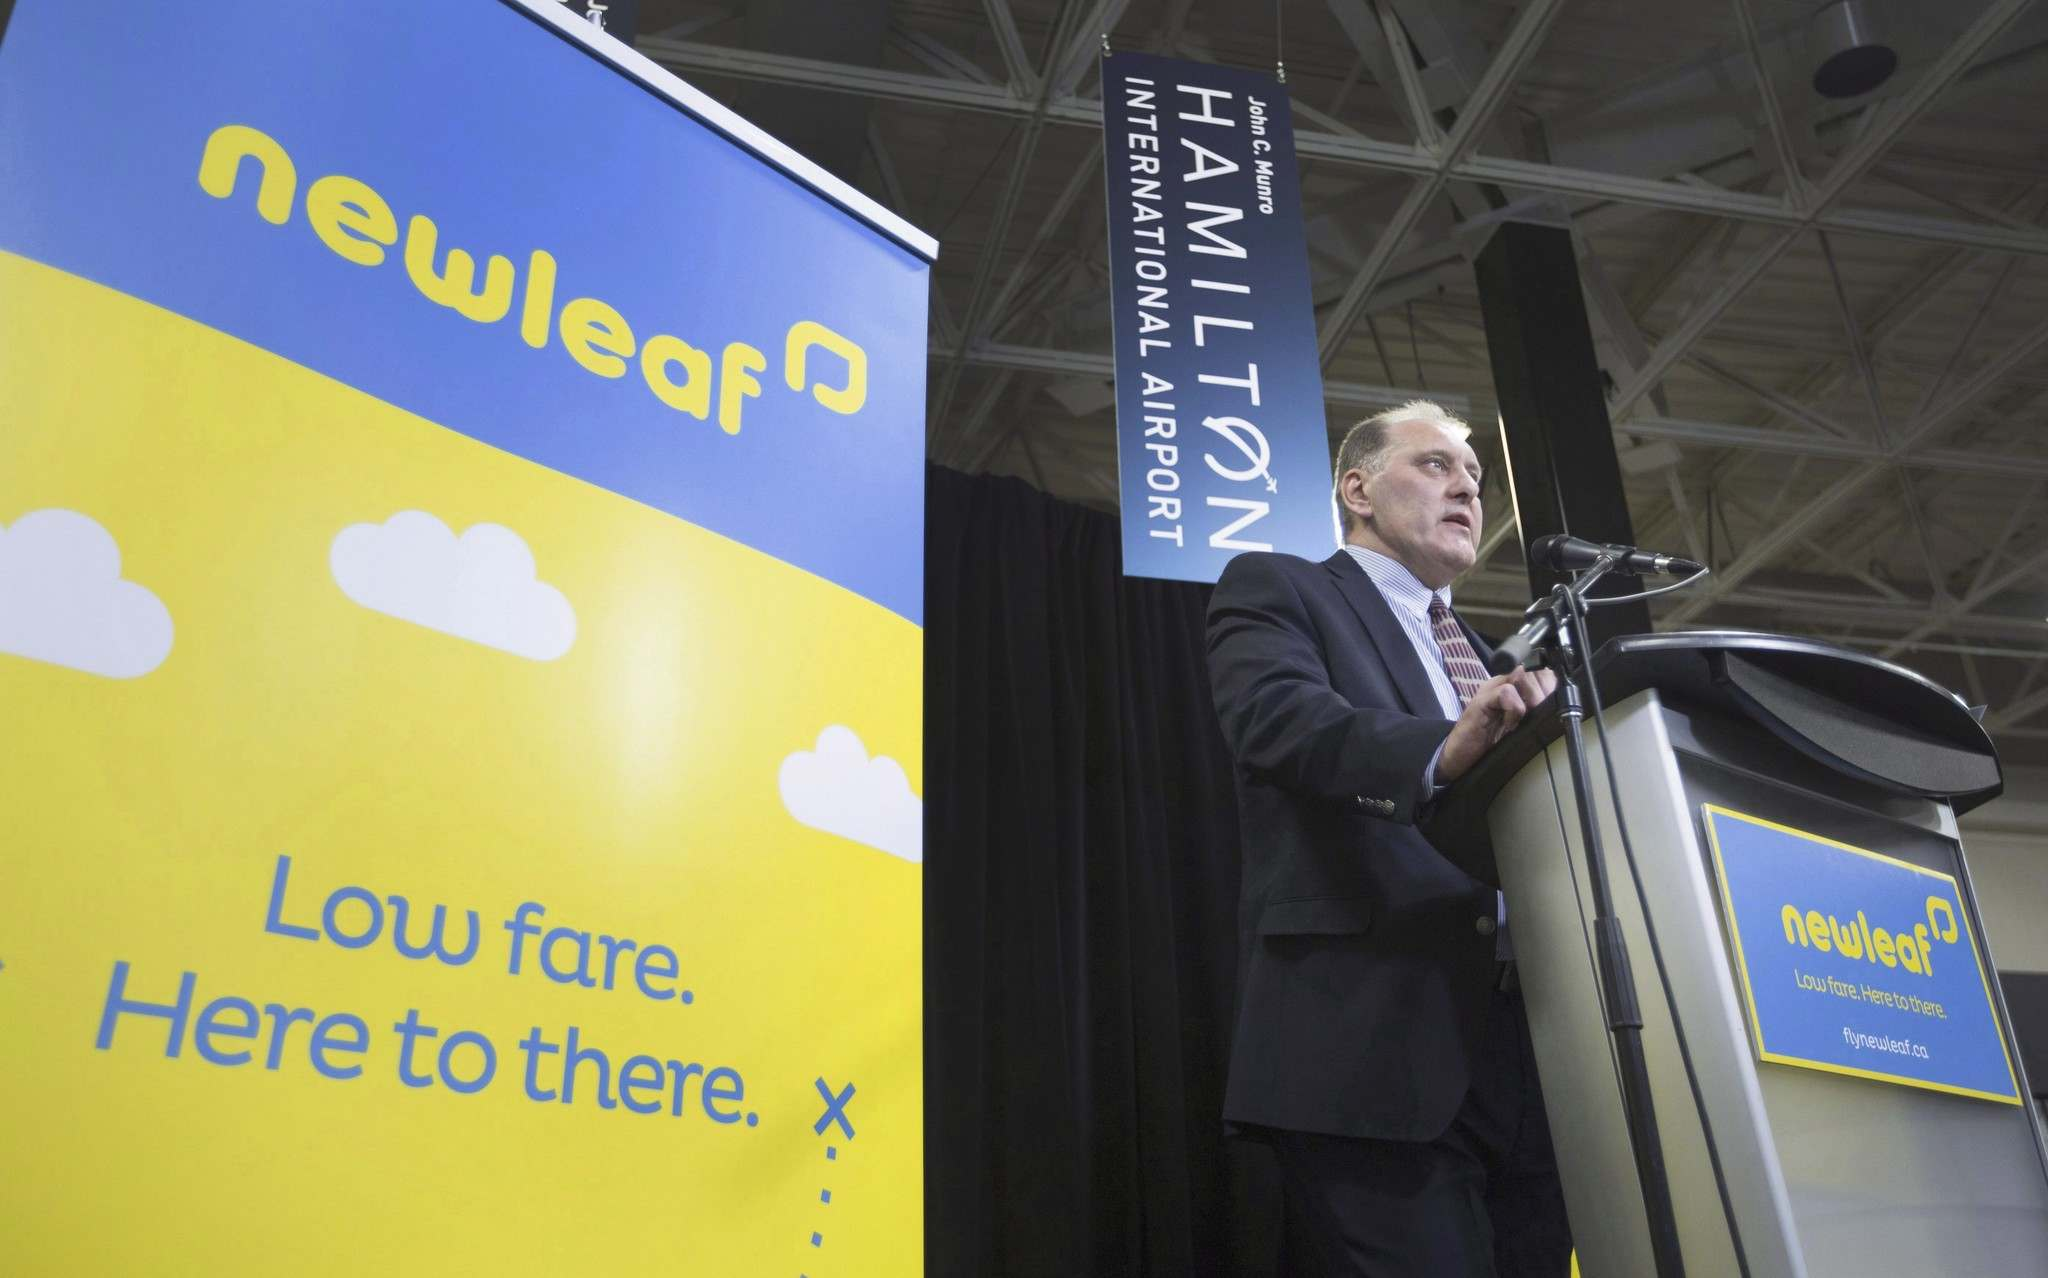 PETER POWER / THE CANADIAN PRESS FILES </p><p>Dean Dacko, Chief Commercial Officer of NewLeaf Travel, speaks at a news conference earlier this year. </p>